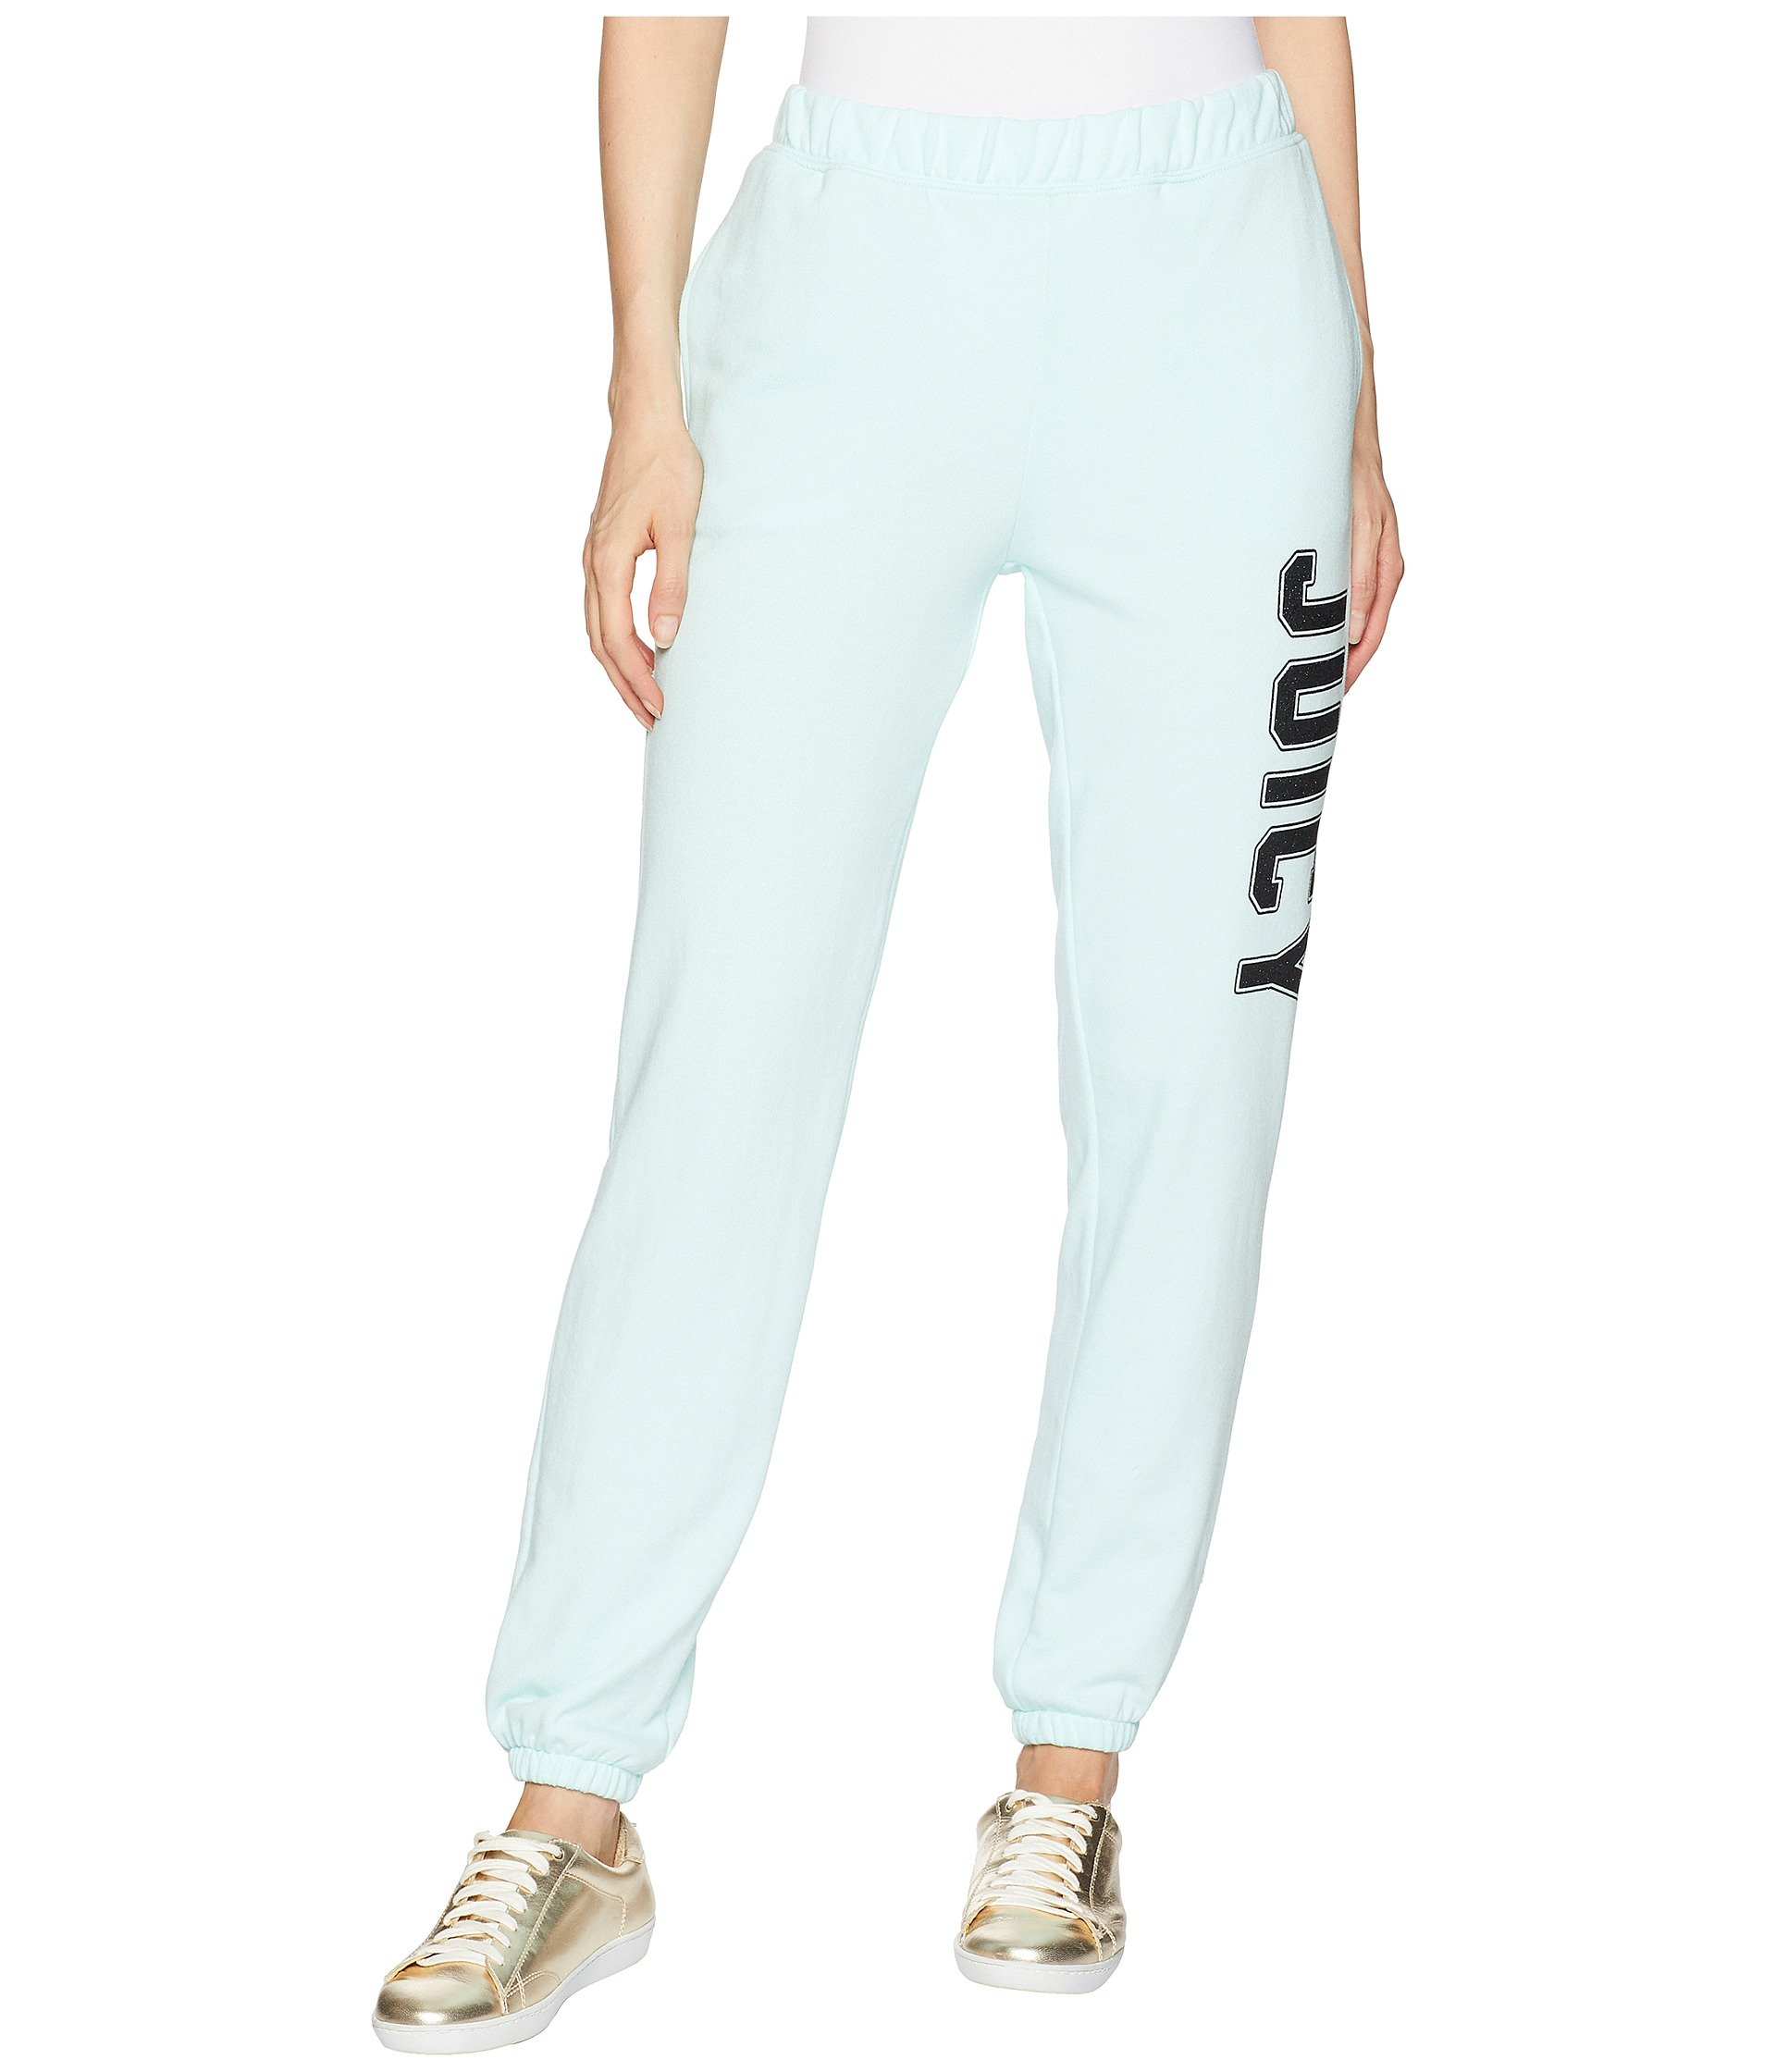 Juicy Couture Women's Pull-On Pant w/Logo Blue Light Small 29